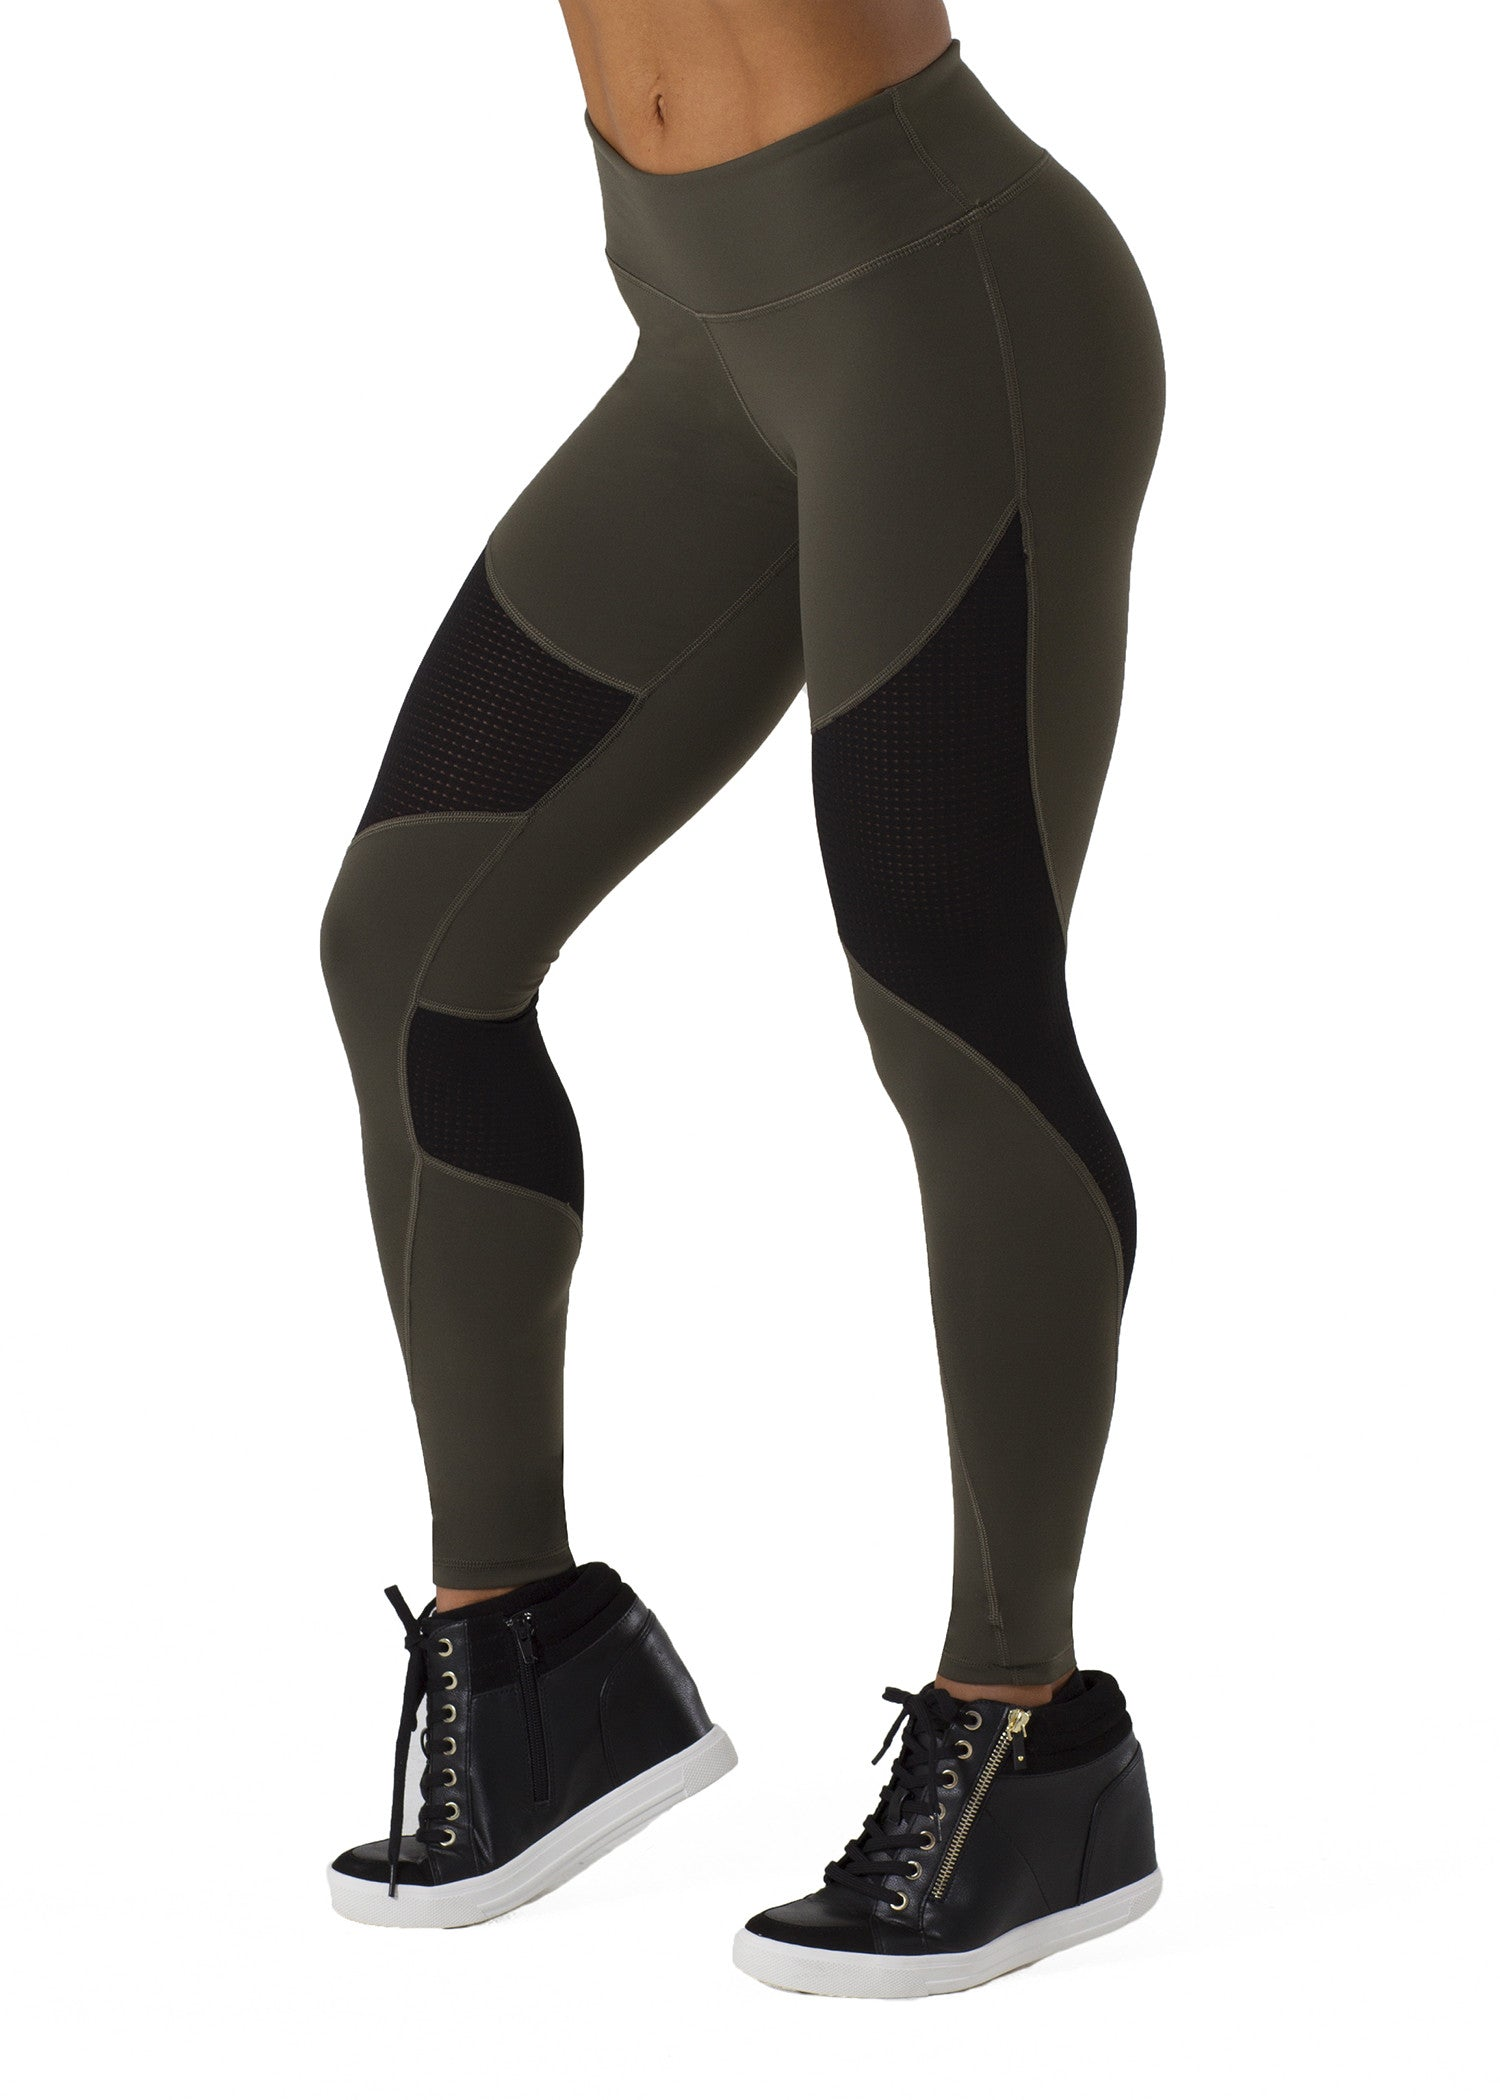 SOULY OLIVE ATHLETIC MESH LEGGINGS